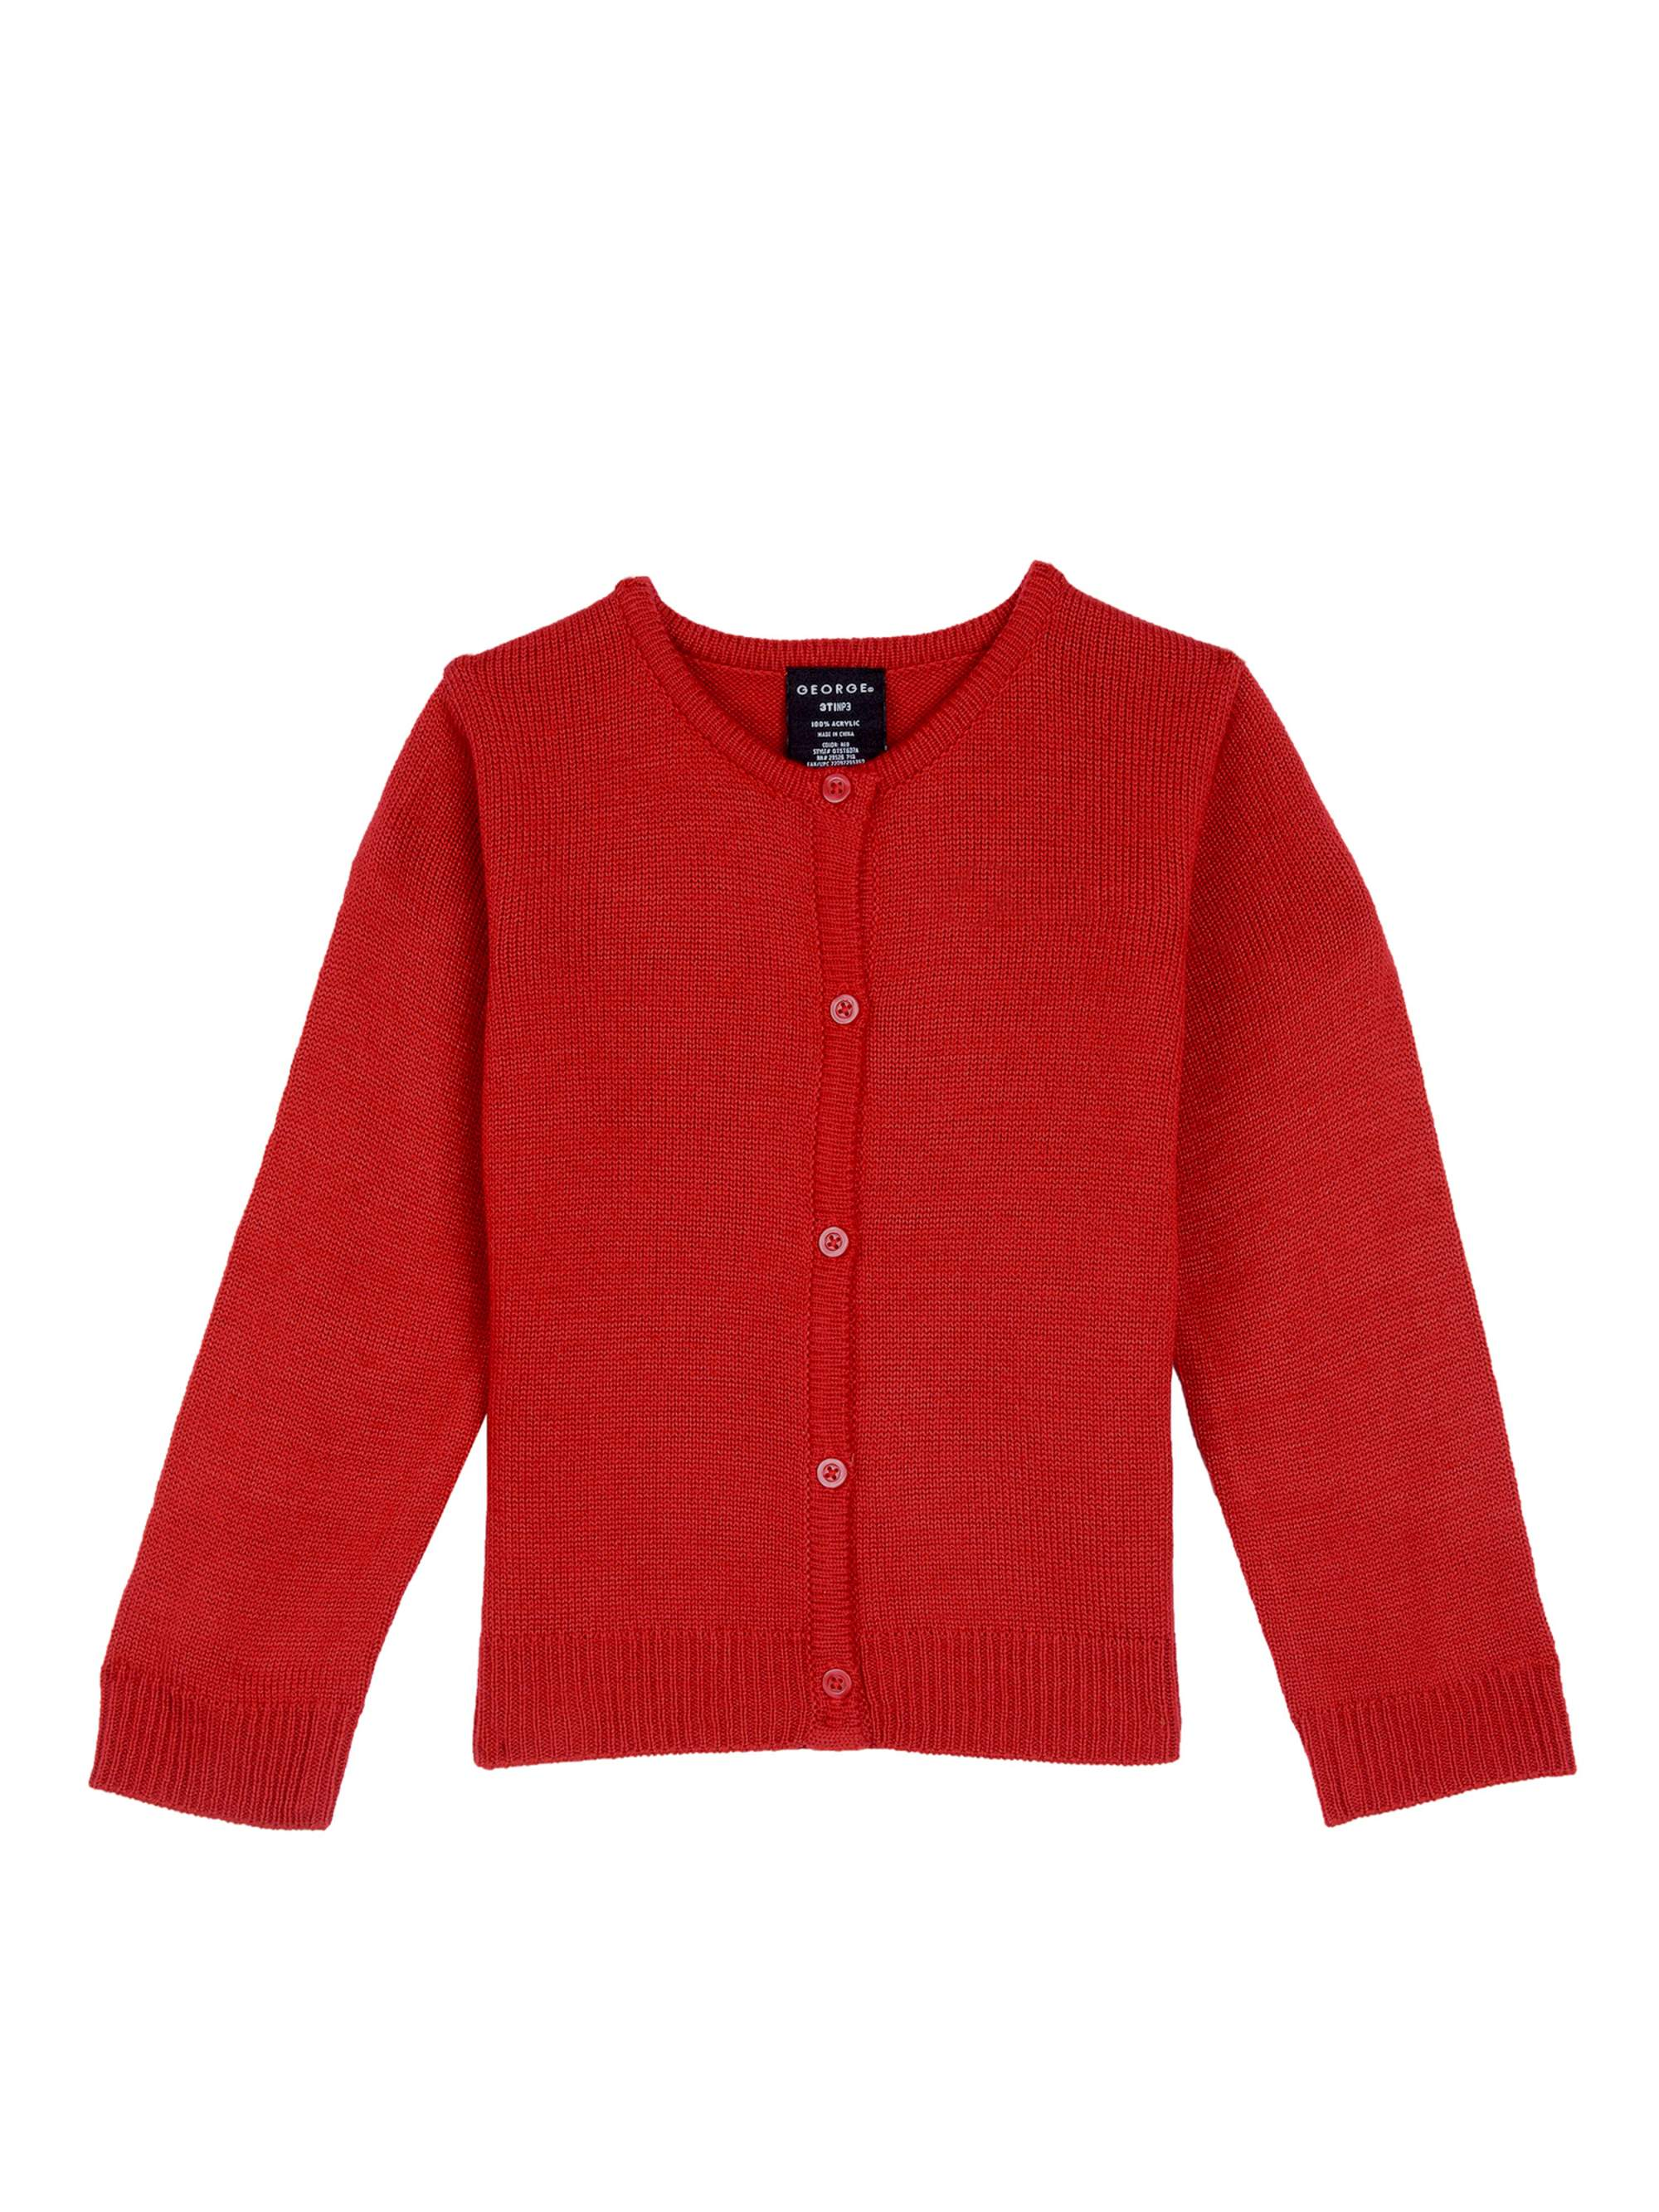 Toddler Girls School Uniform Cardigan Sweater